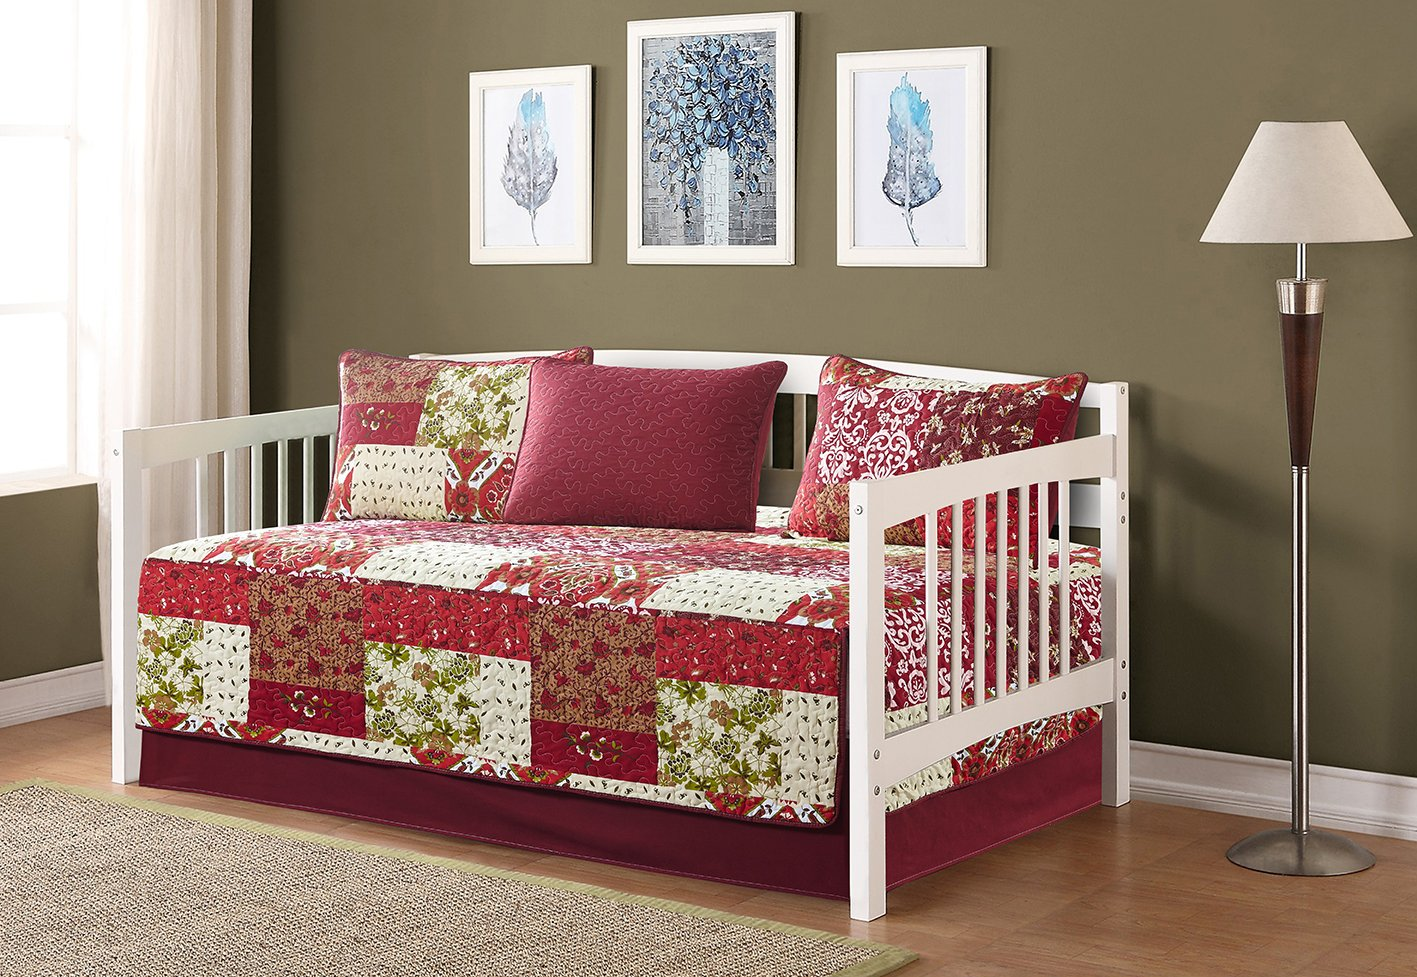 (Twin) Fancy Collection 2pc Bedspread Bed Cover Floral Beige Red Green Brown Burgundy New Twin/Twin Extra Long 51 B019YLZDGG ツイン ツイン